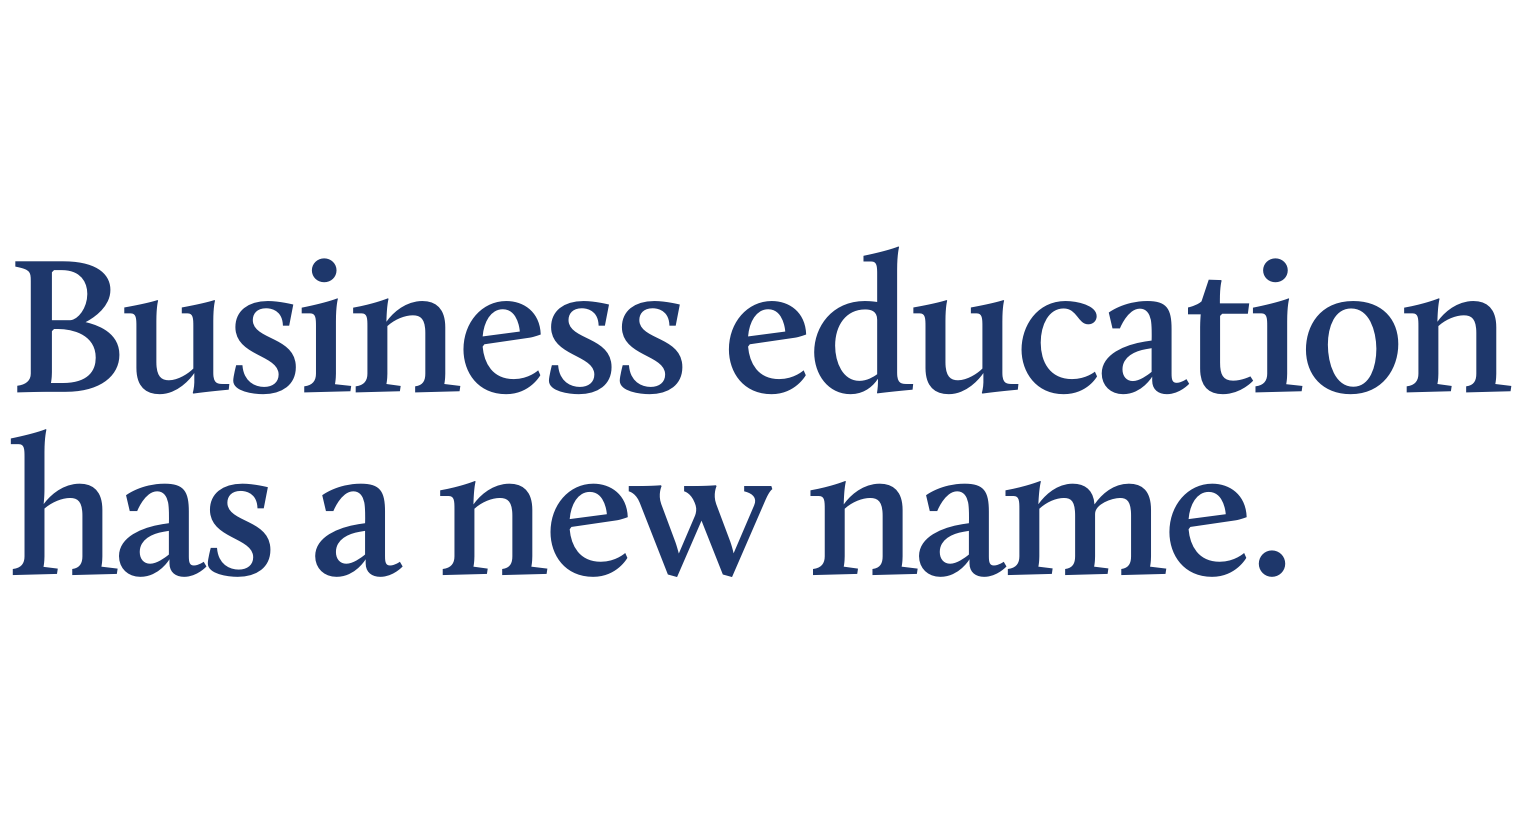 Business education has a new name